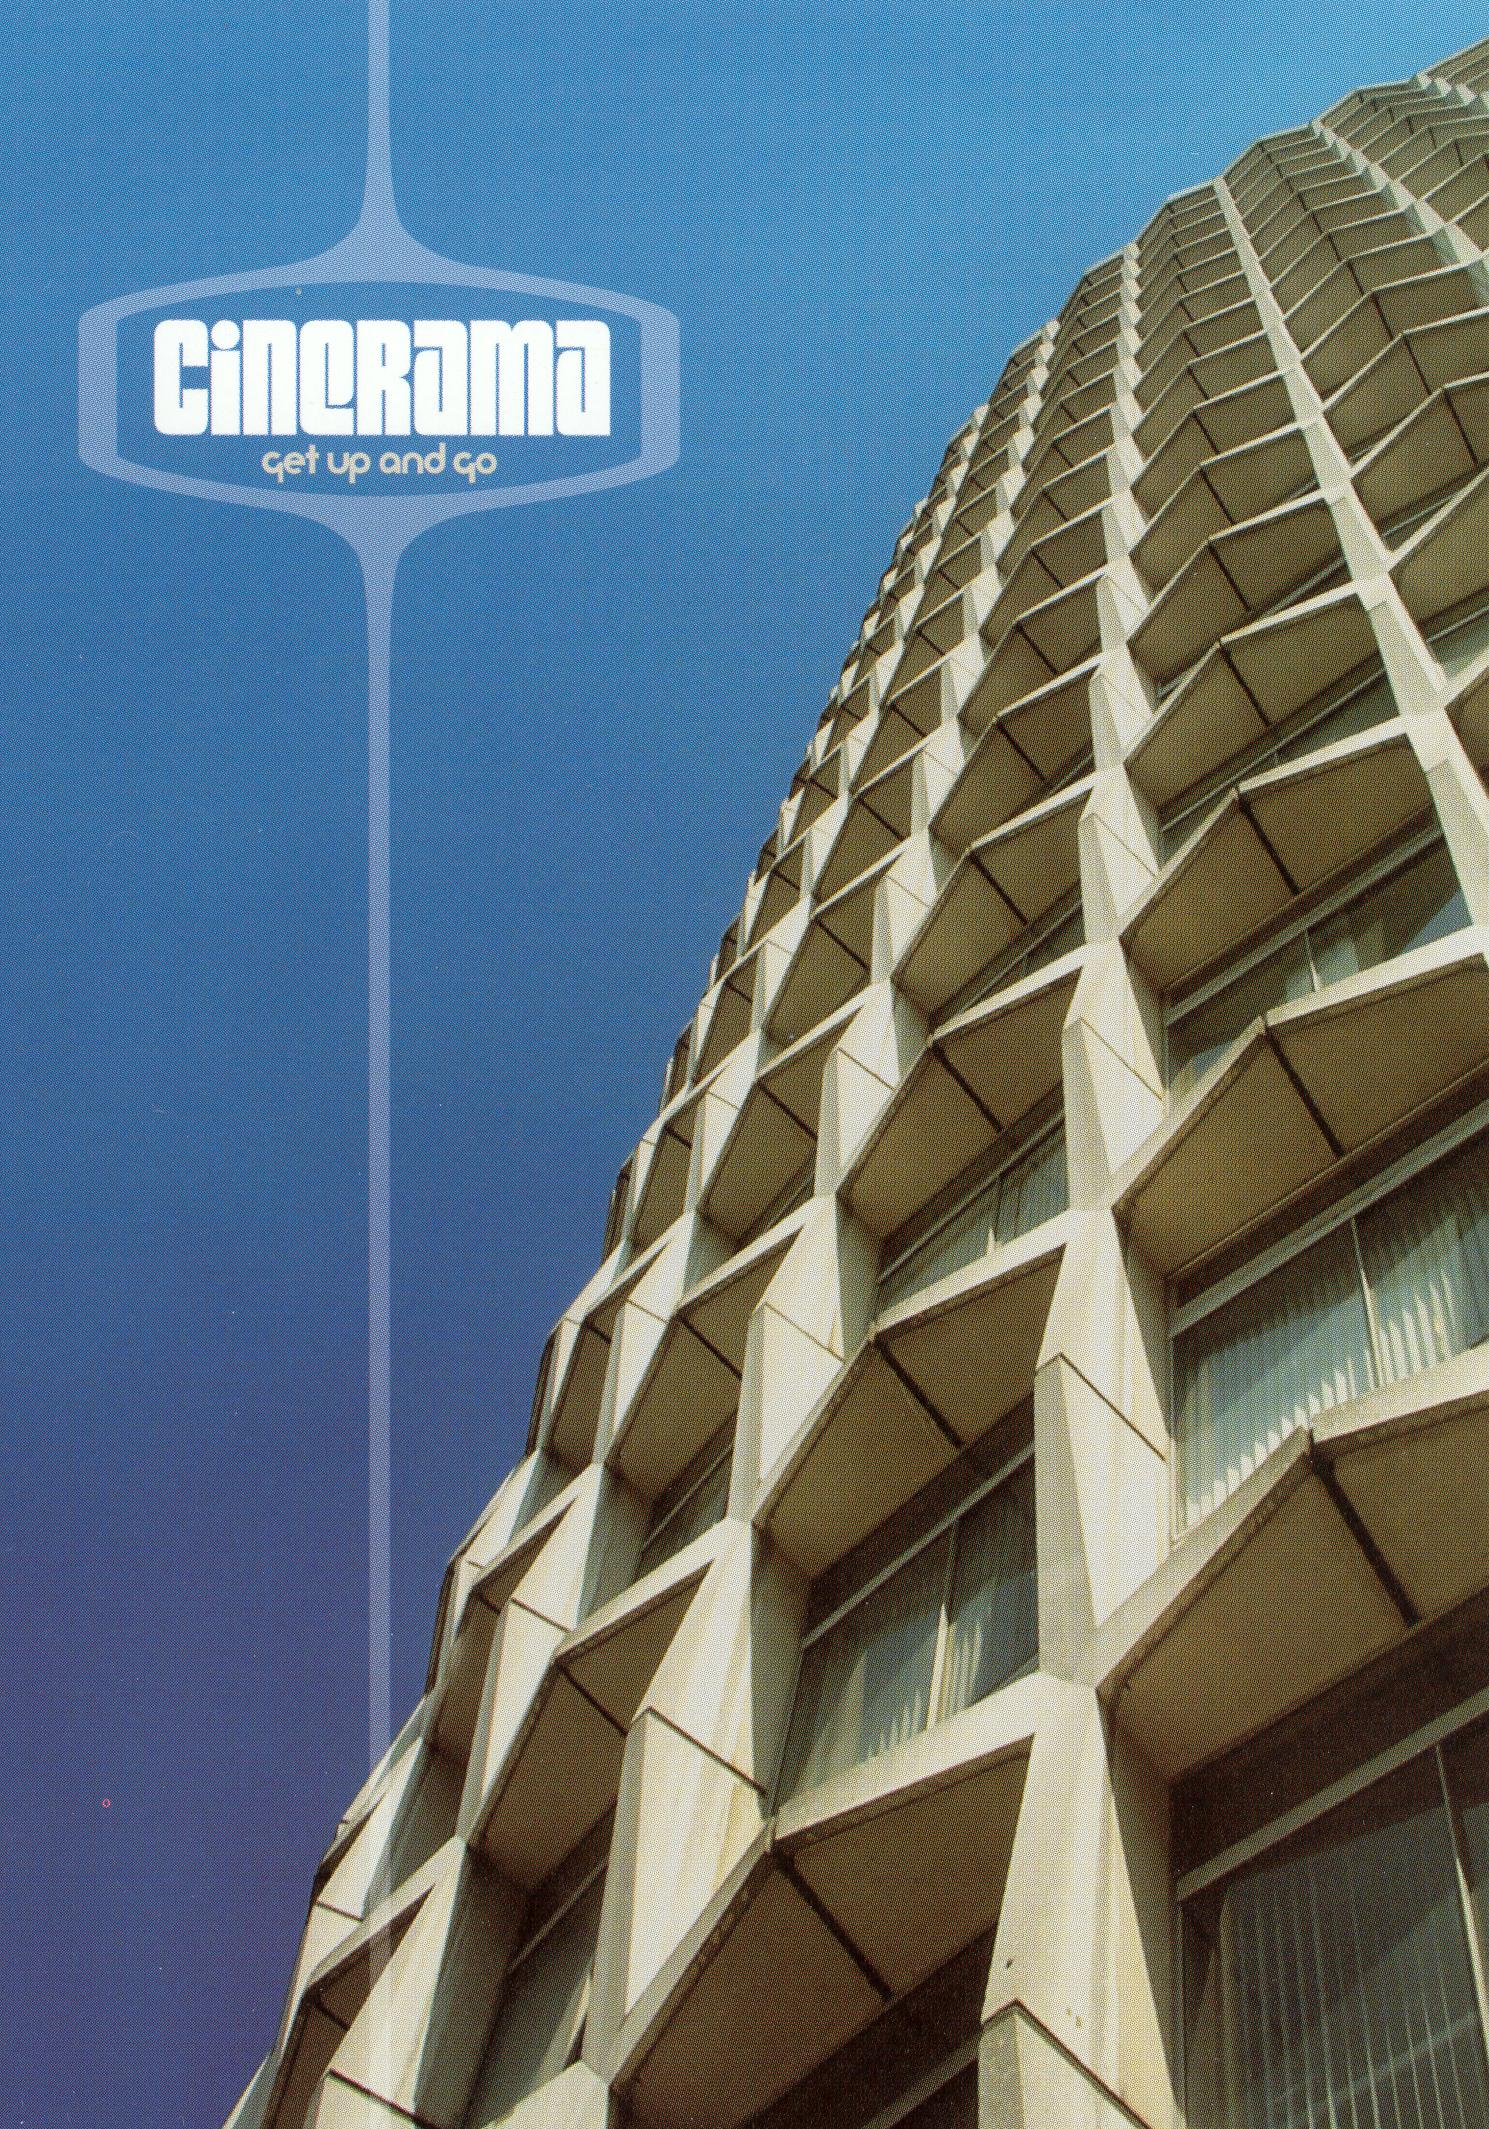 Cinerama: Get Up and Go